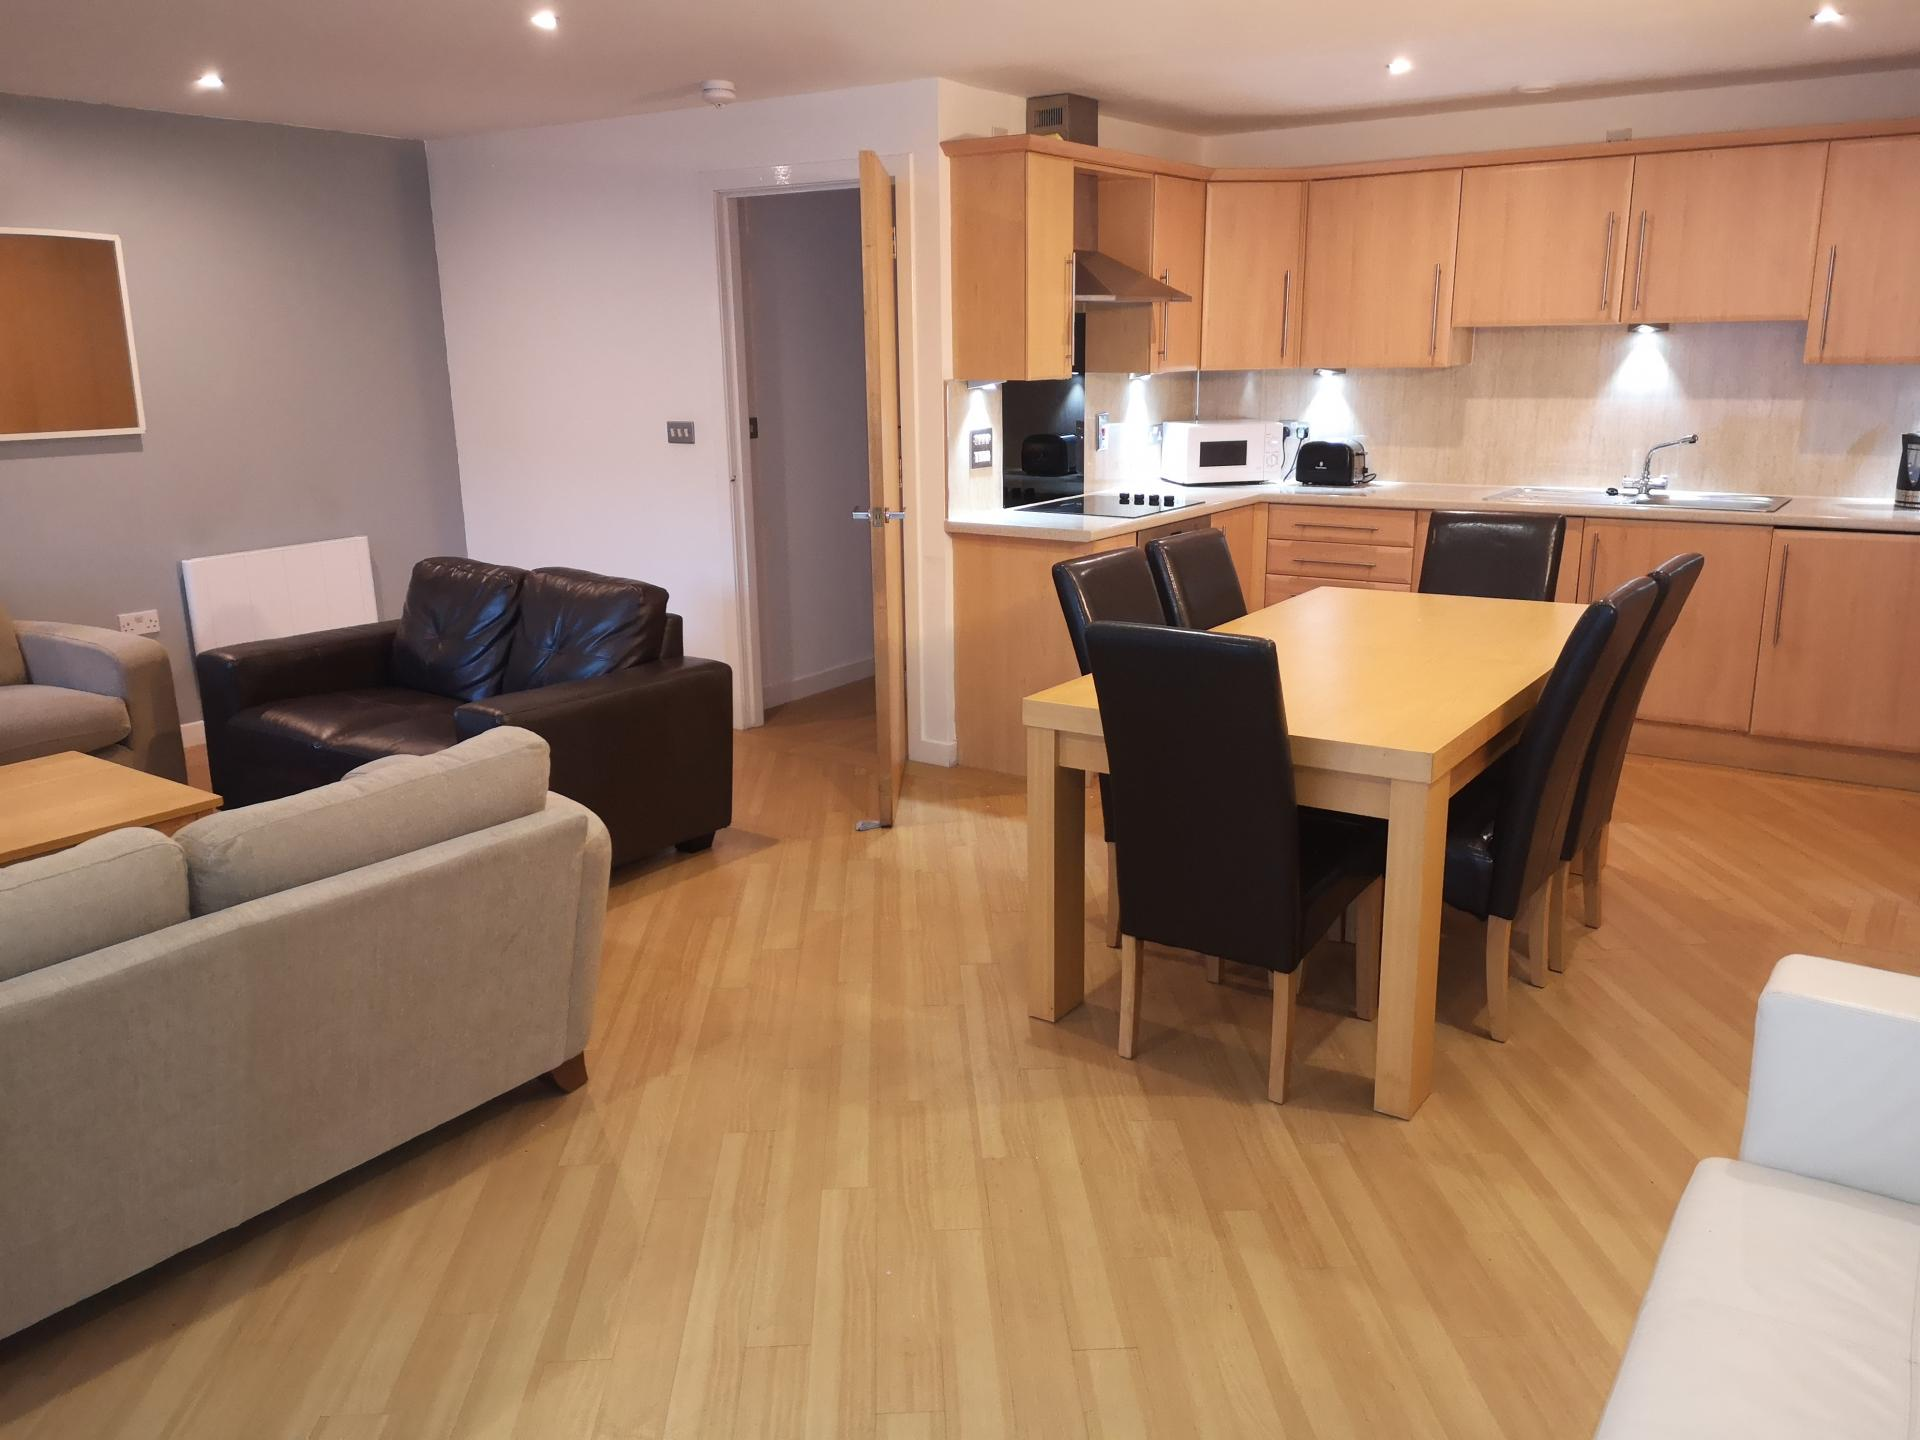 Kitchen at Glasgow Central River Apartments, Centre, Glasgow - Citybase Apartments